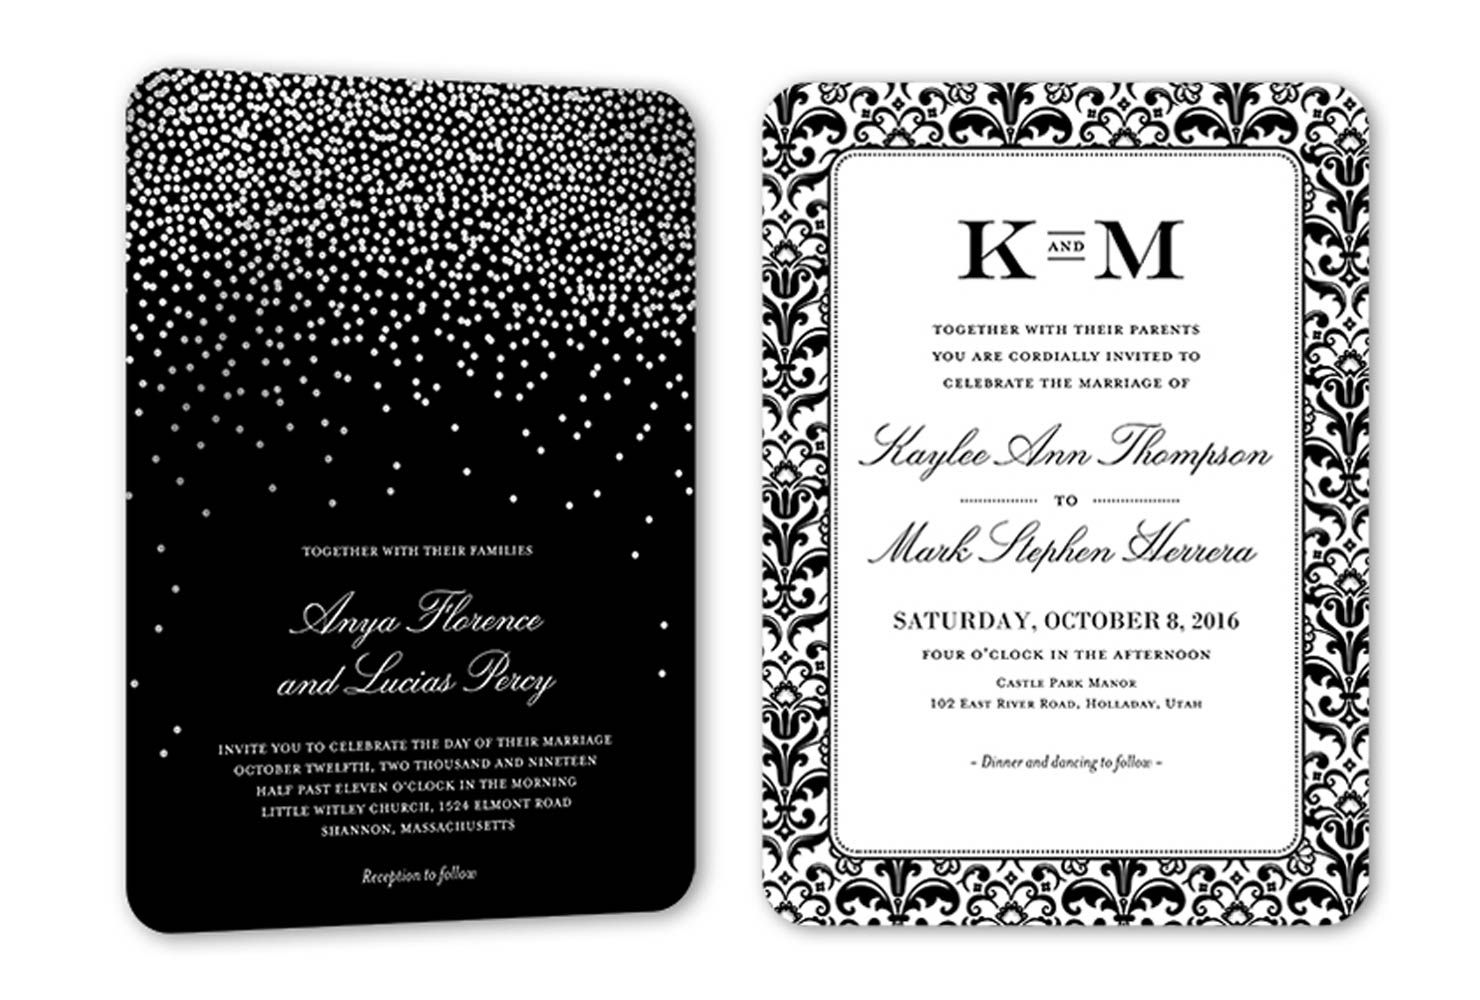 35 Wedding Invitation Wording Examples 2020 Shutterfly With In 2020 Wedding Invitation Wording Wedding Invitation Wording Formal Wedding Invitation Wording Examples